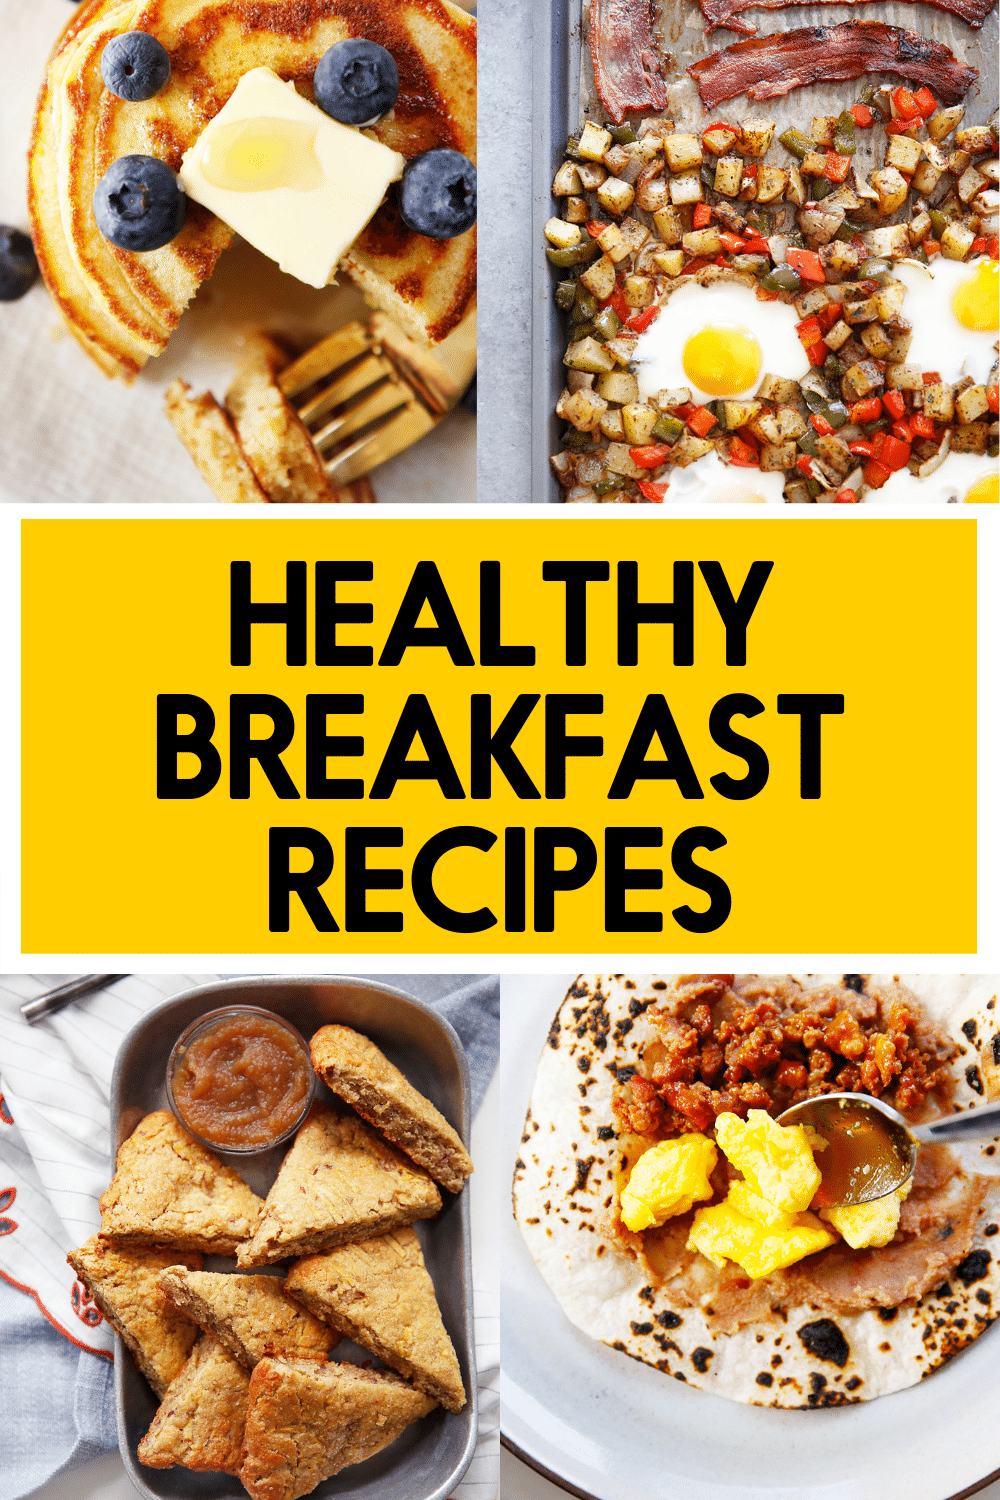 Healthy breakfast recipes.